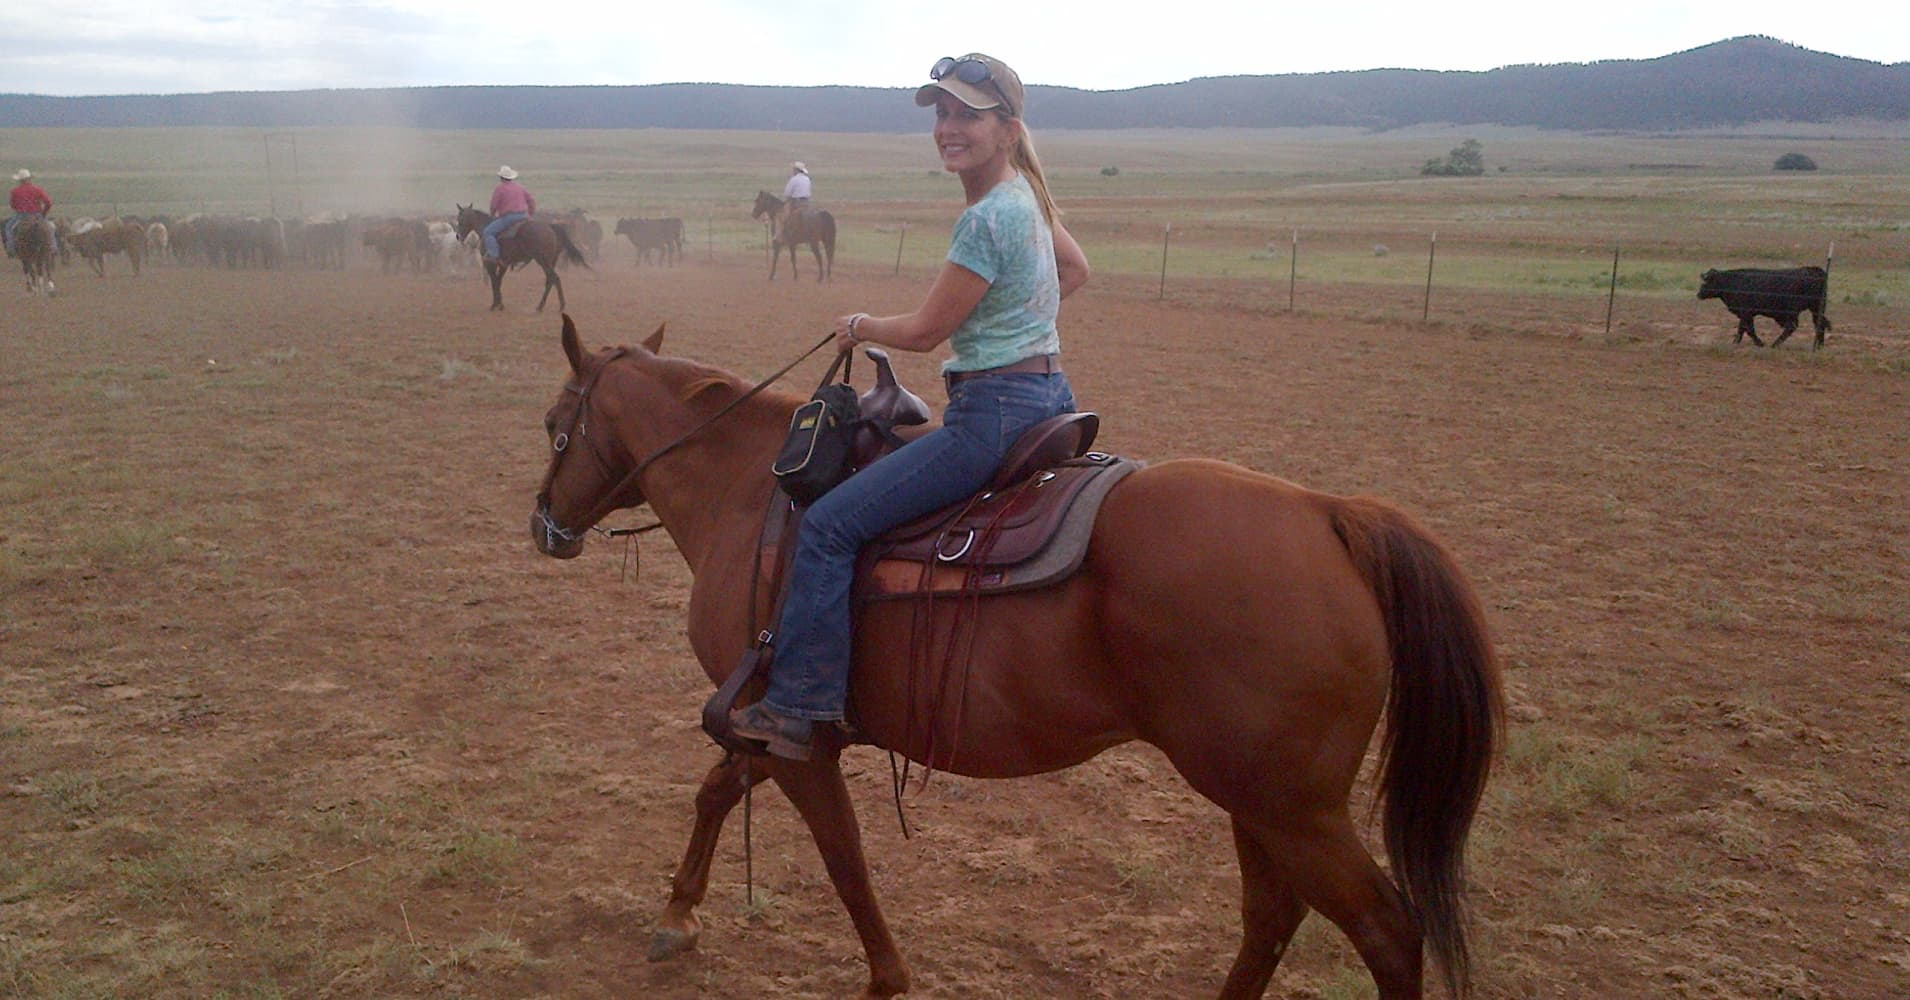 Andrea Sloan enjoying time with her beloved horse Heathen.